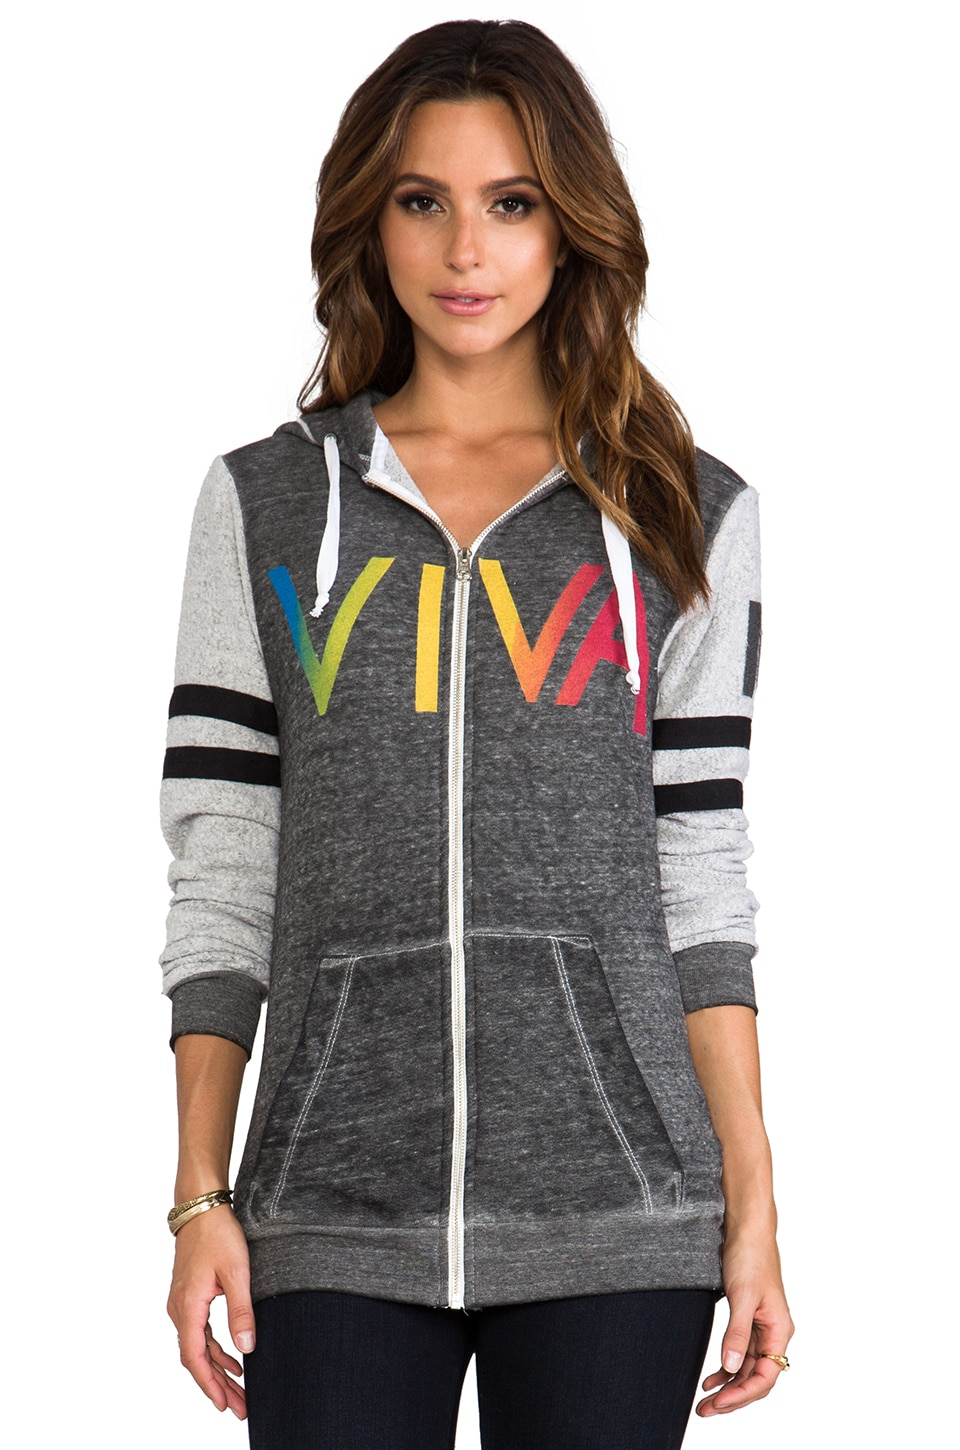 Rebel Yell Viva Zip Hoodie in Heather Gray